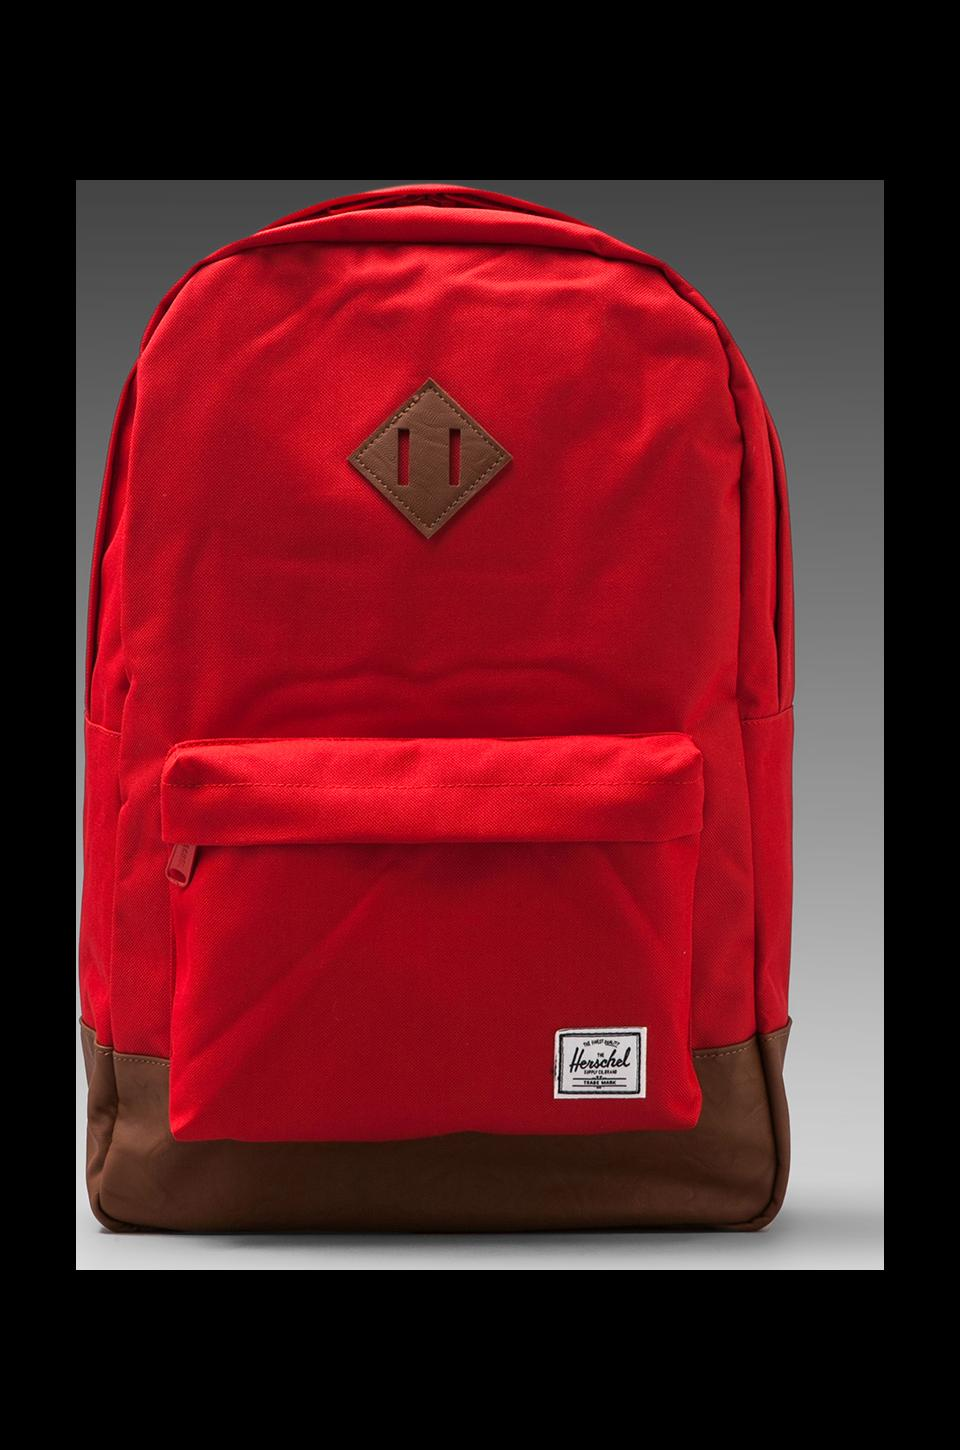 Herschel Supply Co. Heritage Backpack in Red